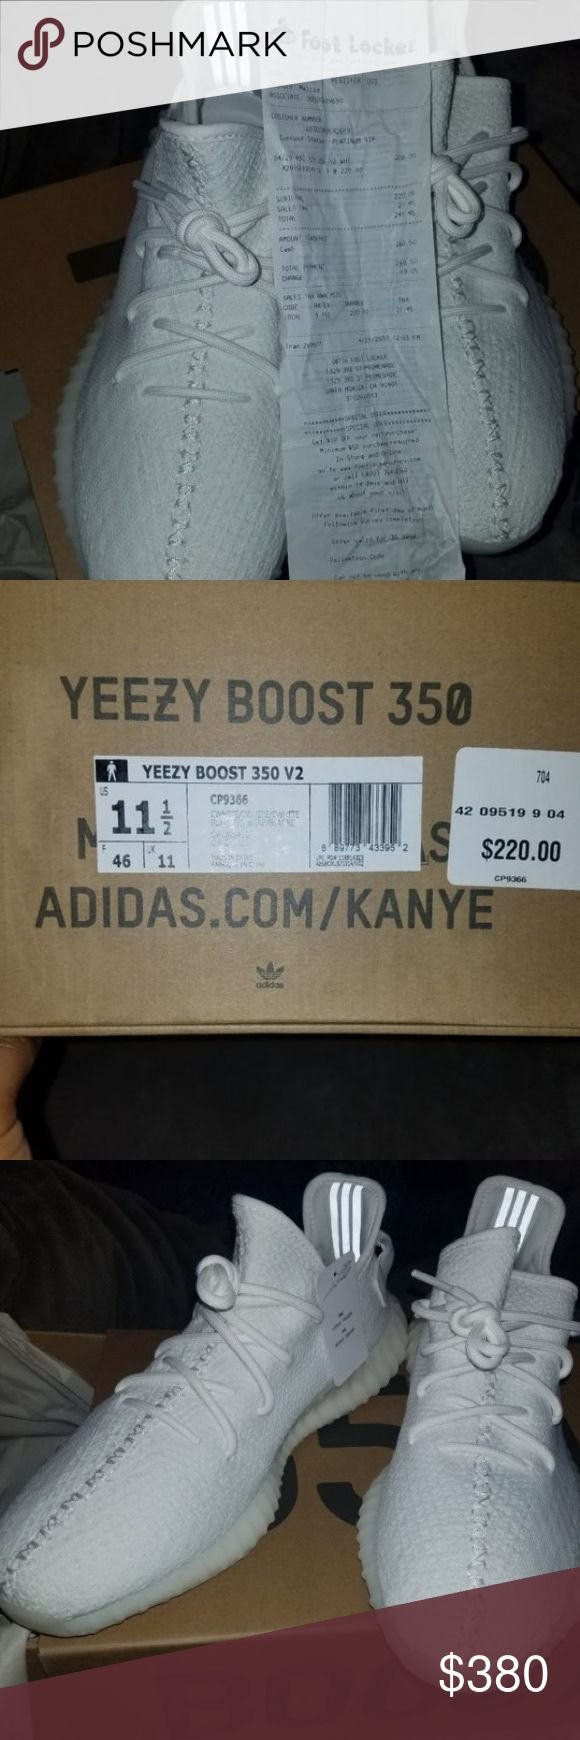 Adidas Yeezy Boost 350 V2 Cream White Brand new yeezy adidas boost 350 creme white originals size 11.5. These shoes are new and it comes with original receipt (look at pics) Tags are attached (look at pics). Contact me at (832) 449-9929 before purchase, I do NOT do transactions through this app! PRICE IS NEGOTIABLE! TEXT ME OR LEAVE YOUR # Yeezy Shoes Athletic Shoes